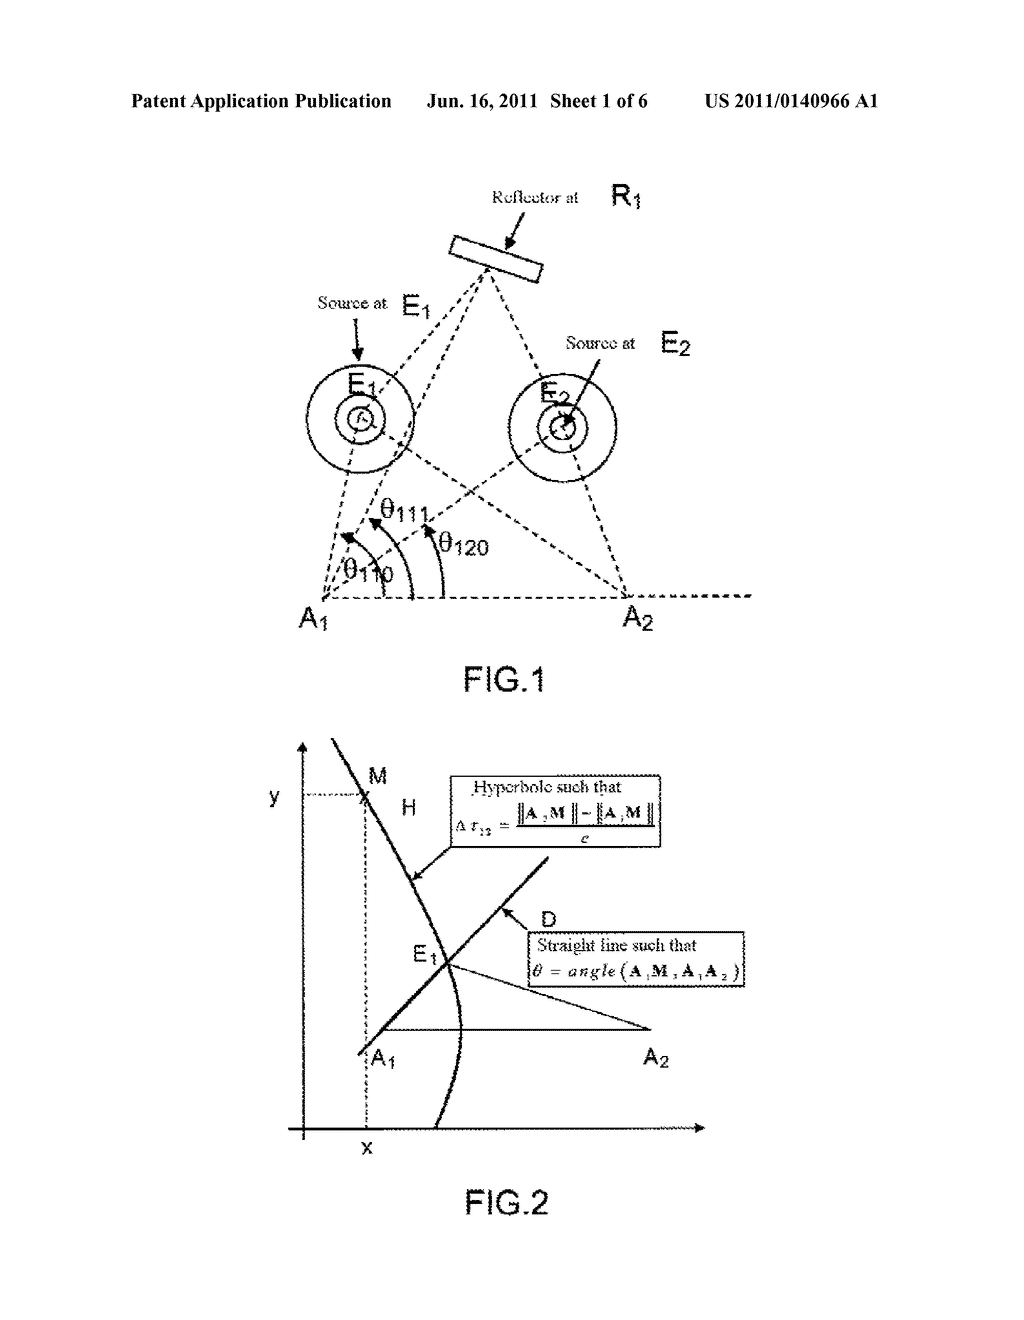 hight resolution of method of multi transmitter and multi path aoa tdoa location comprising a sub method for synchronizing and equalizing the receiving stations diagram